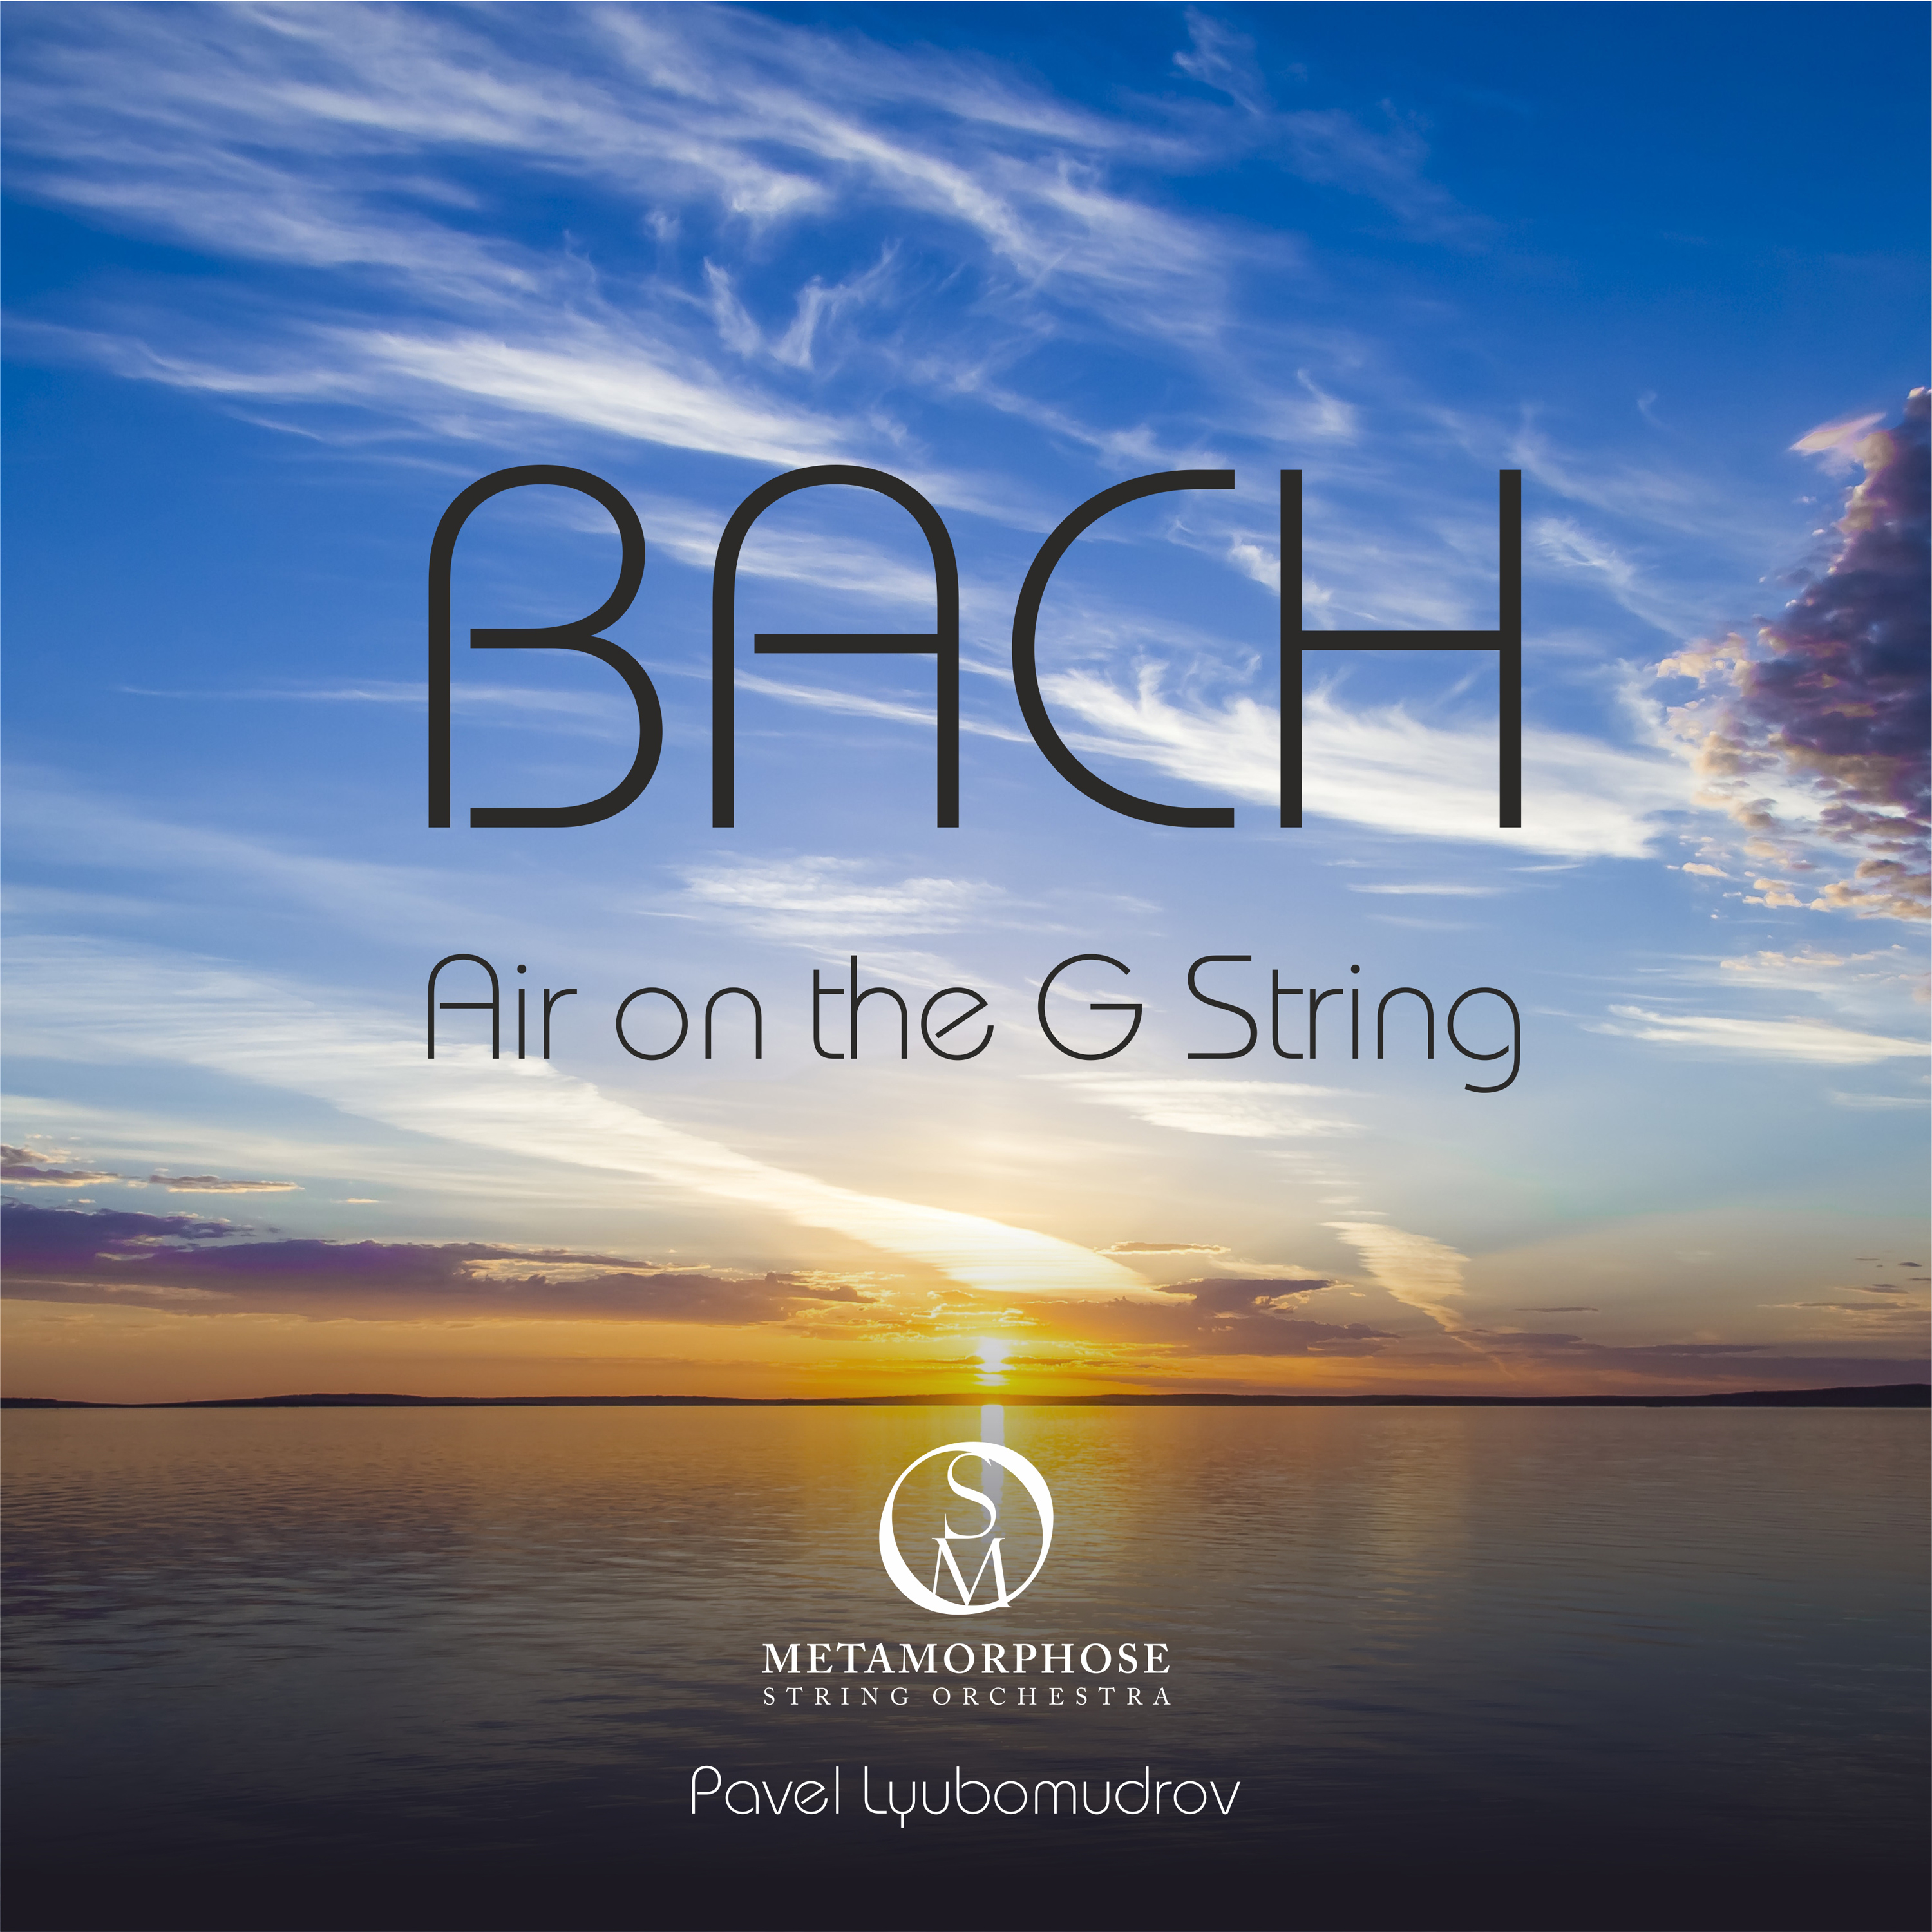 Orchestral Suite No. 3 in D Major, BWV 1068: II. Air on the G String